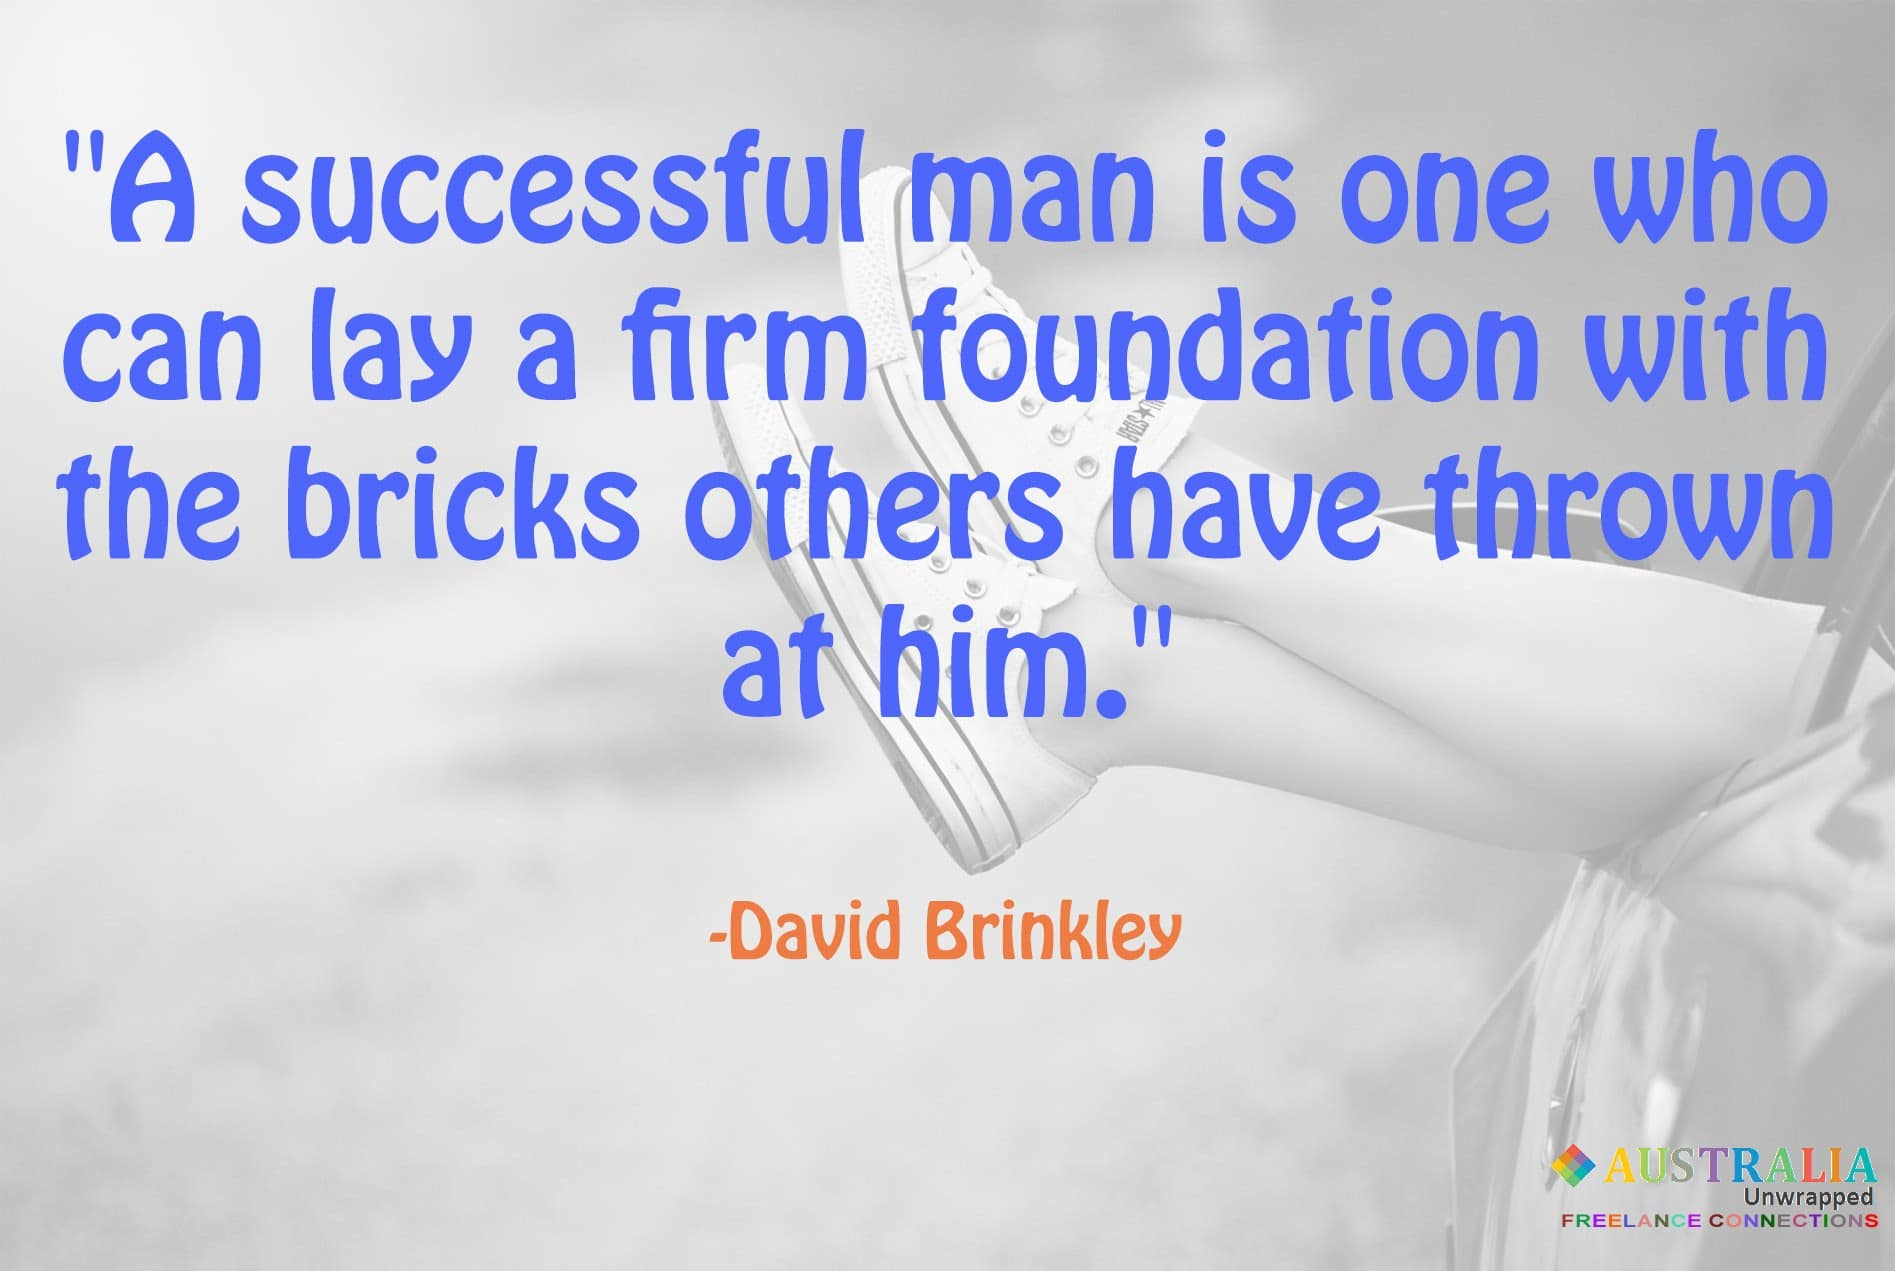 Inspirational & motivational quotes about successful man